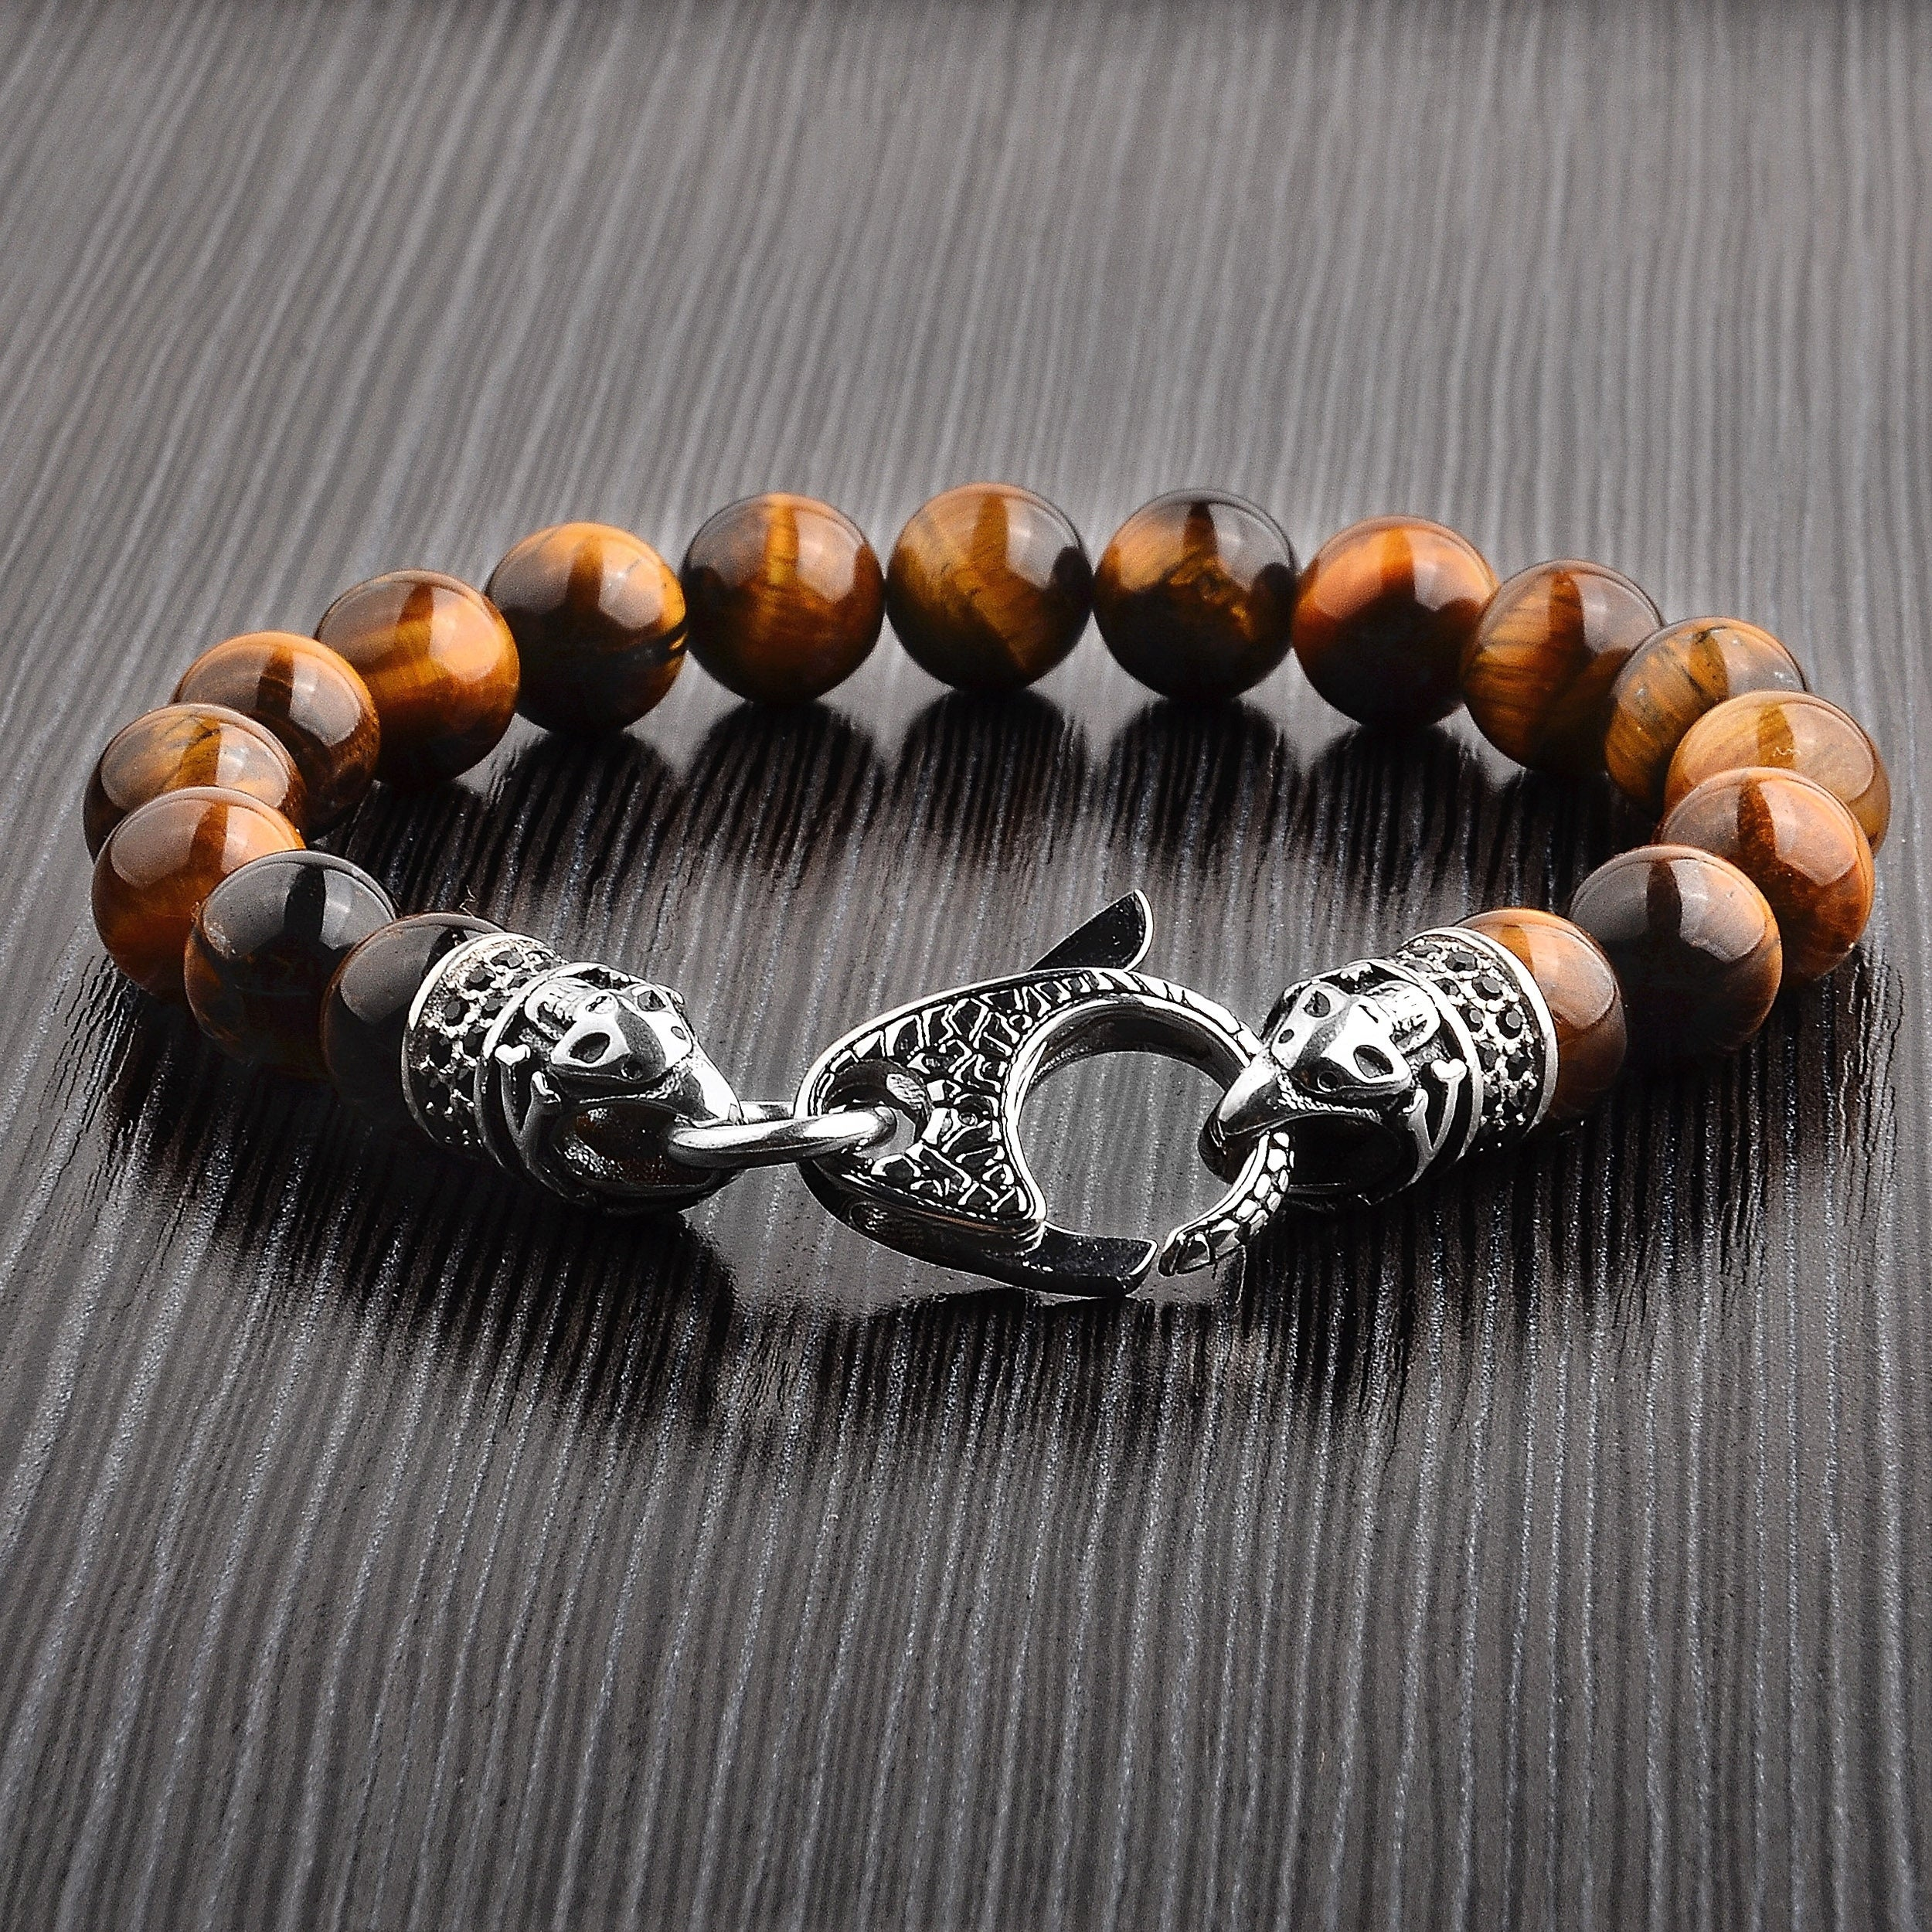 product s polished antiqued over on bracelet free stainless eye crucible tigers steel tiger overstock beaded watches shipping jewelry orders bead